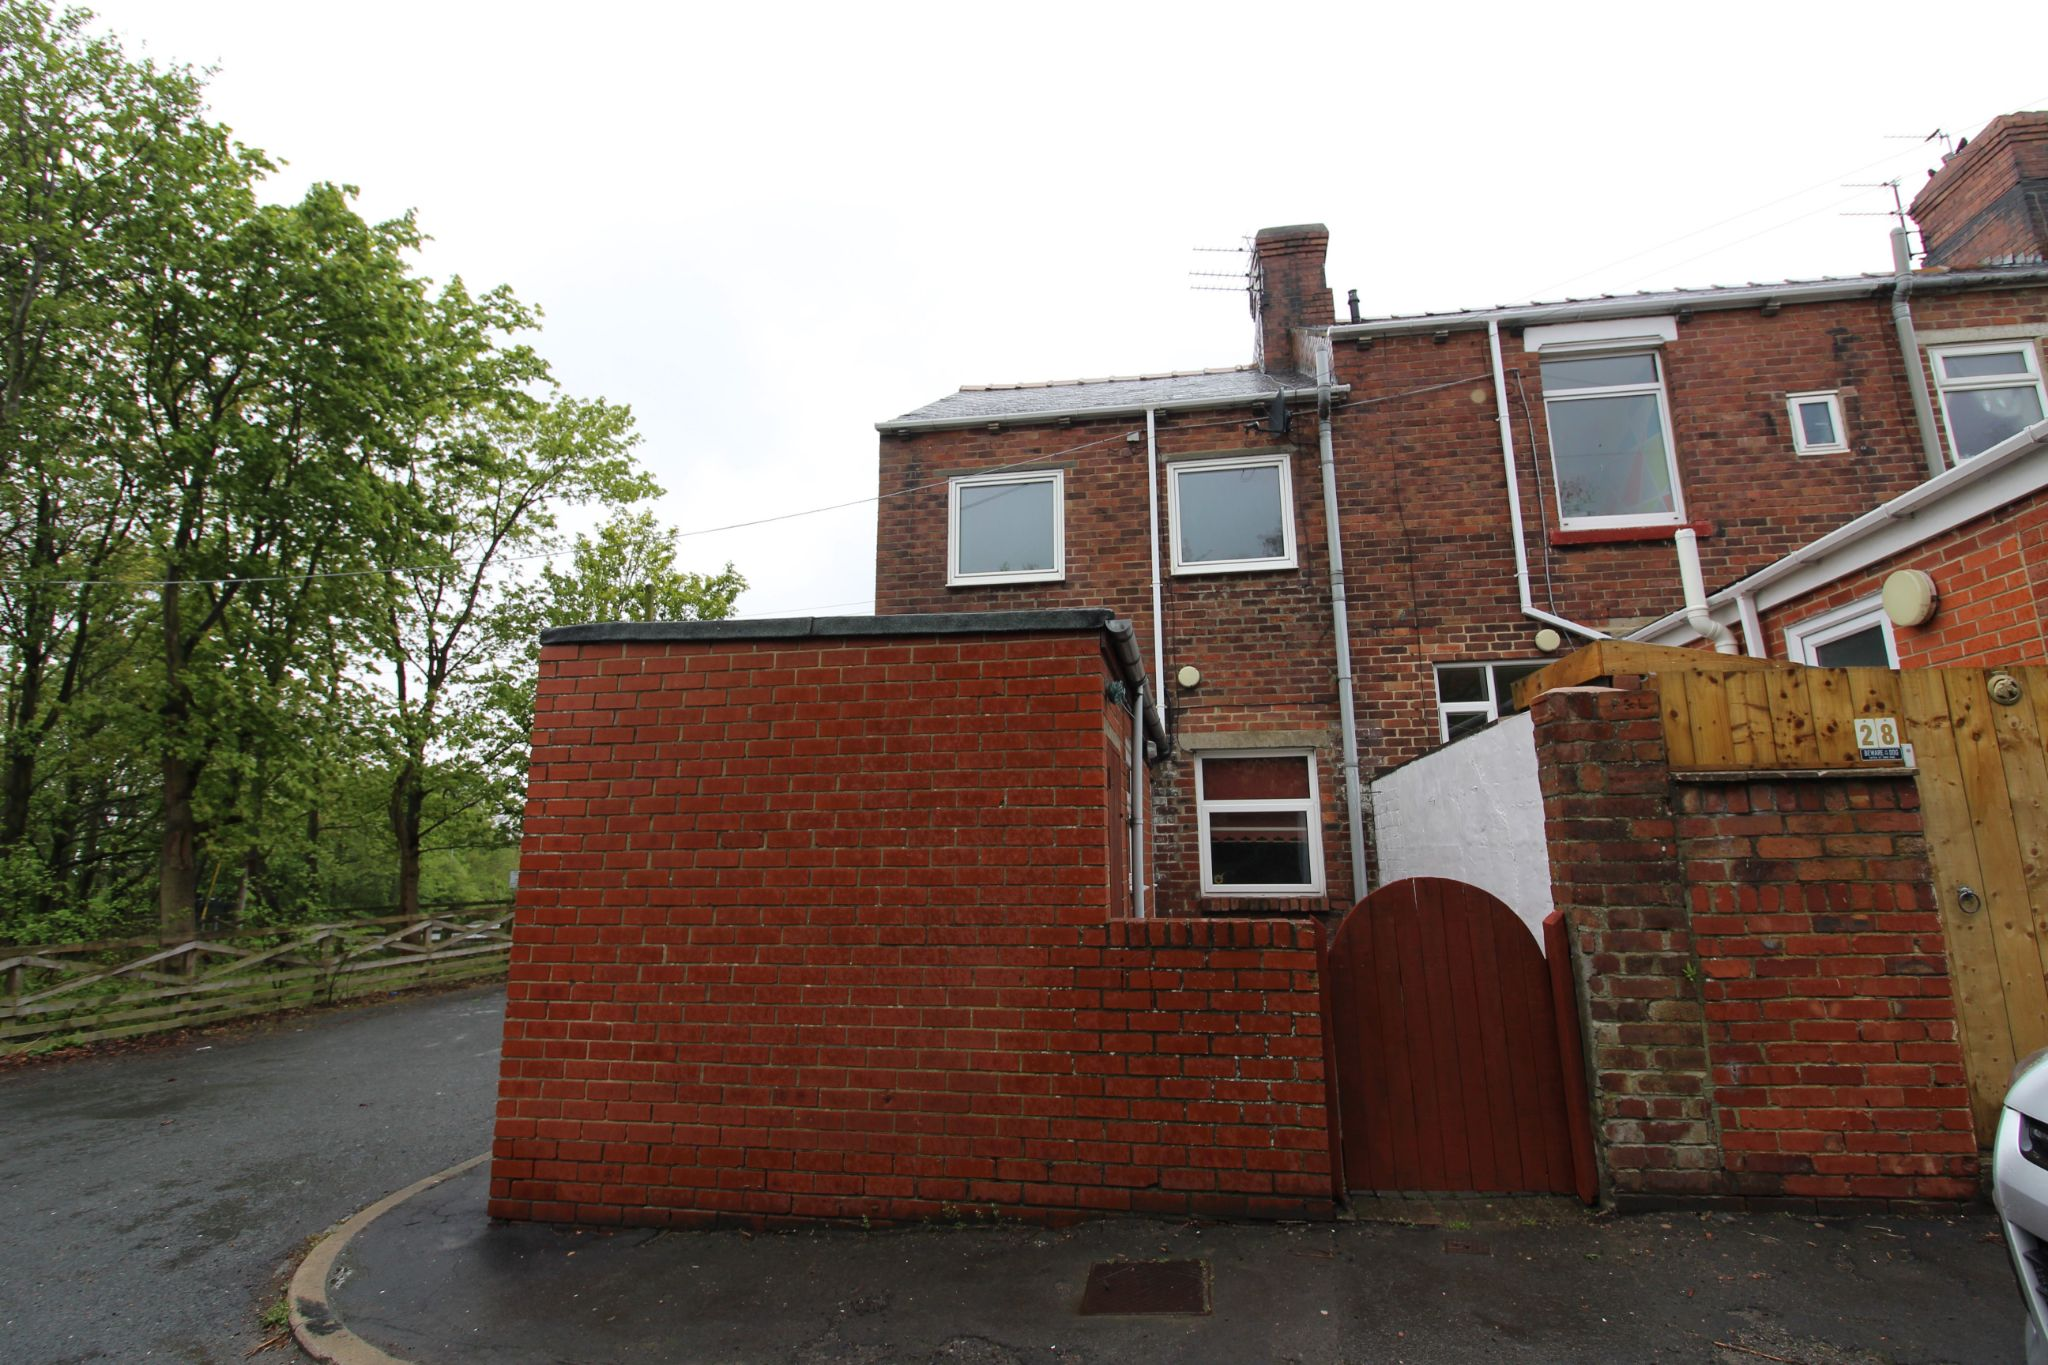 3 bedroom end terraced house For Sale in Willington And Hunwick - Photograph 25.